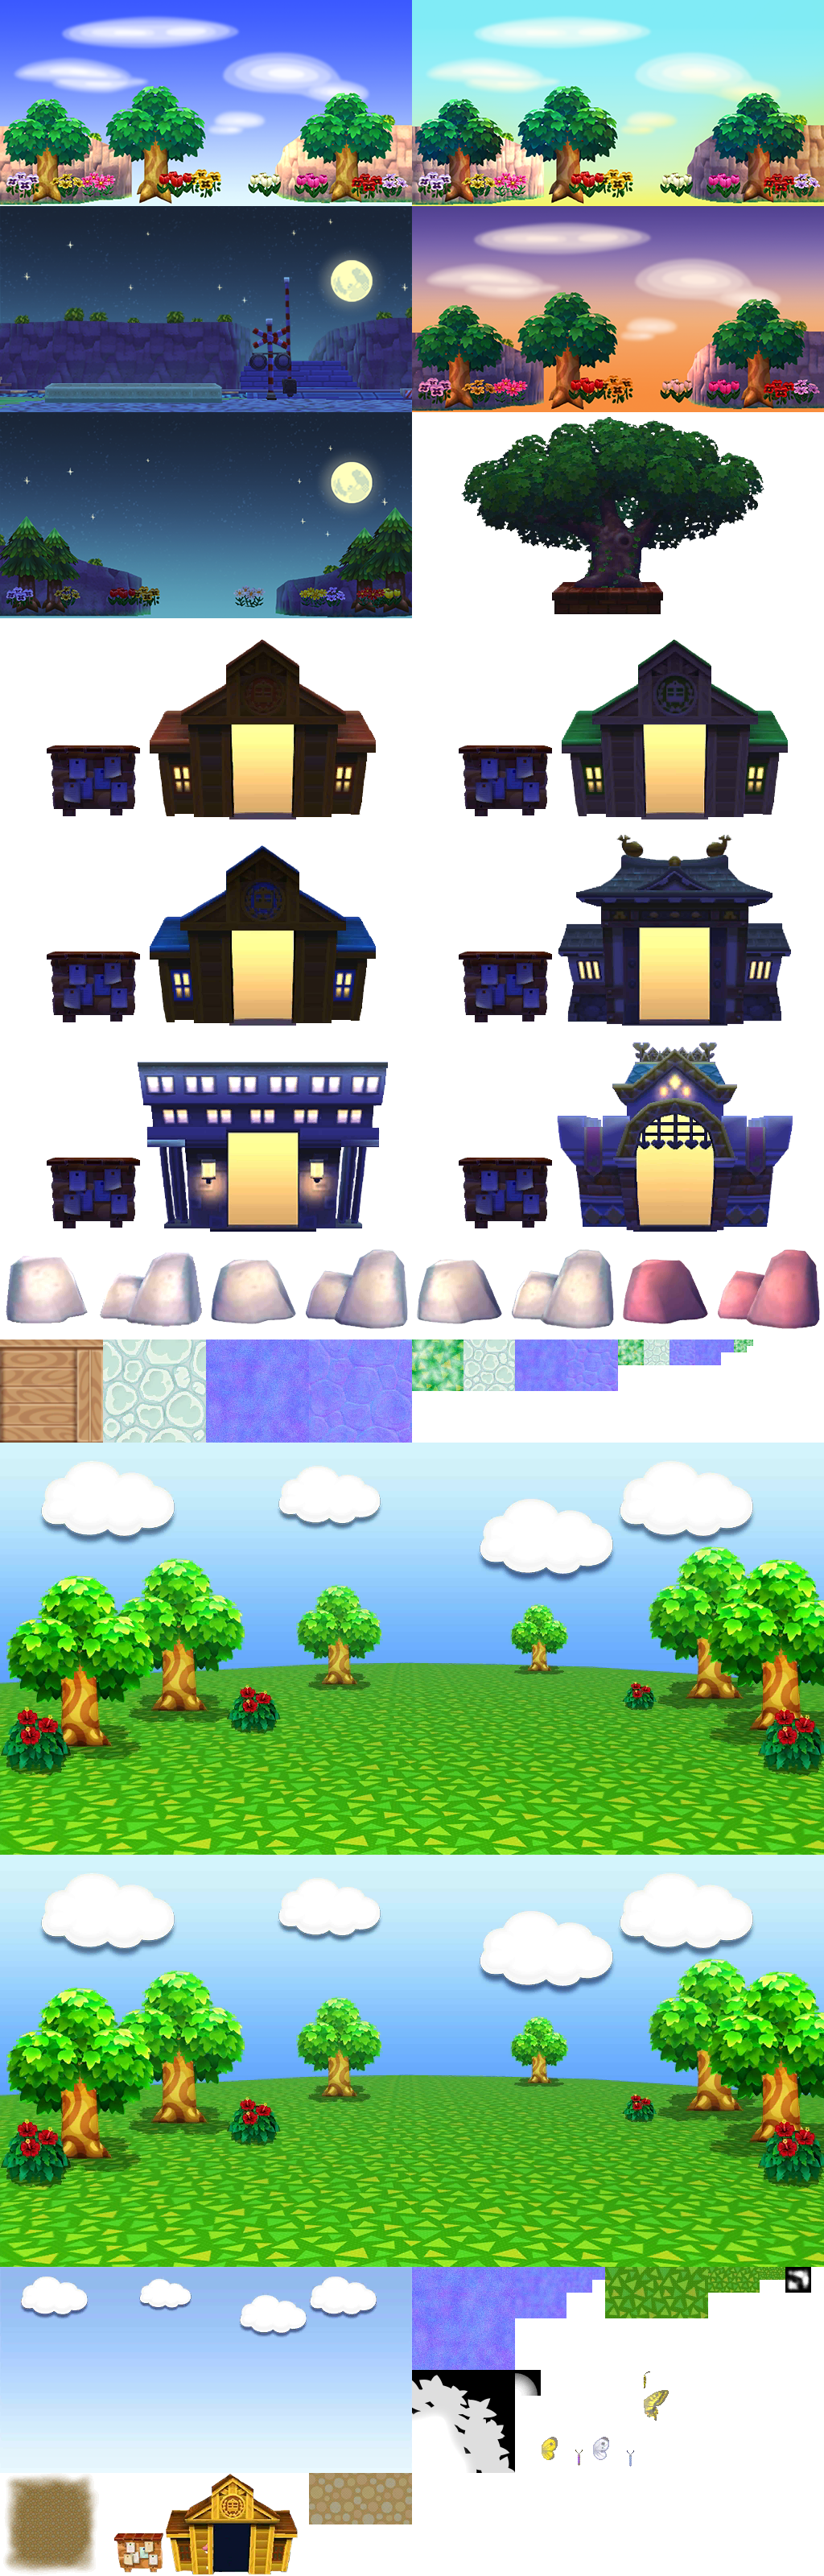 Animal Crossing Puzzle League Background